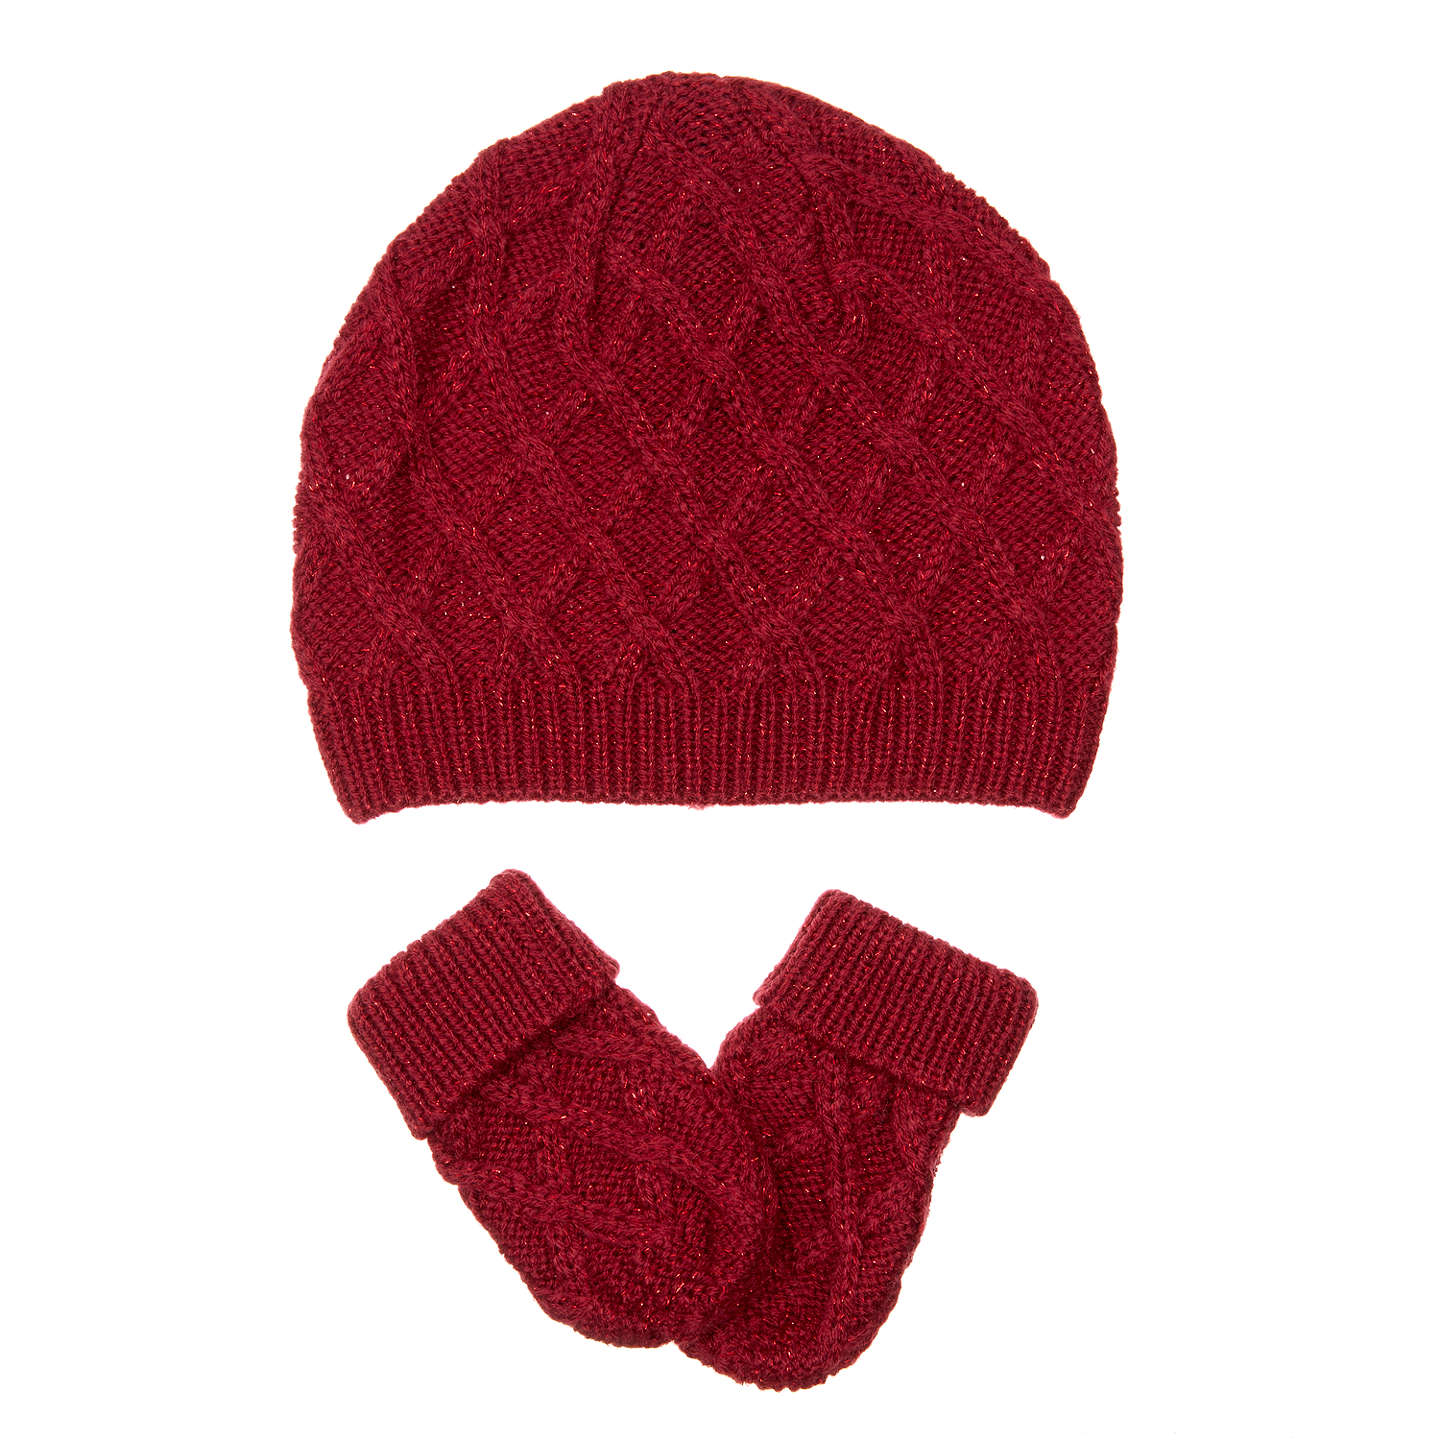 BuyJohn Lewis Baby Beret and Mitten Set, Red, 12-24 months Online at johnlewis.com